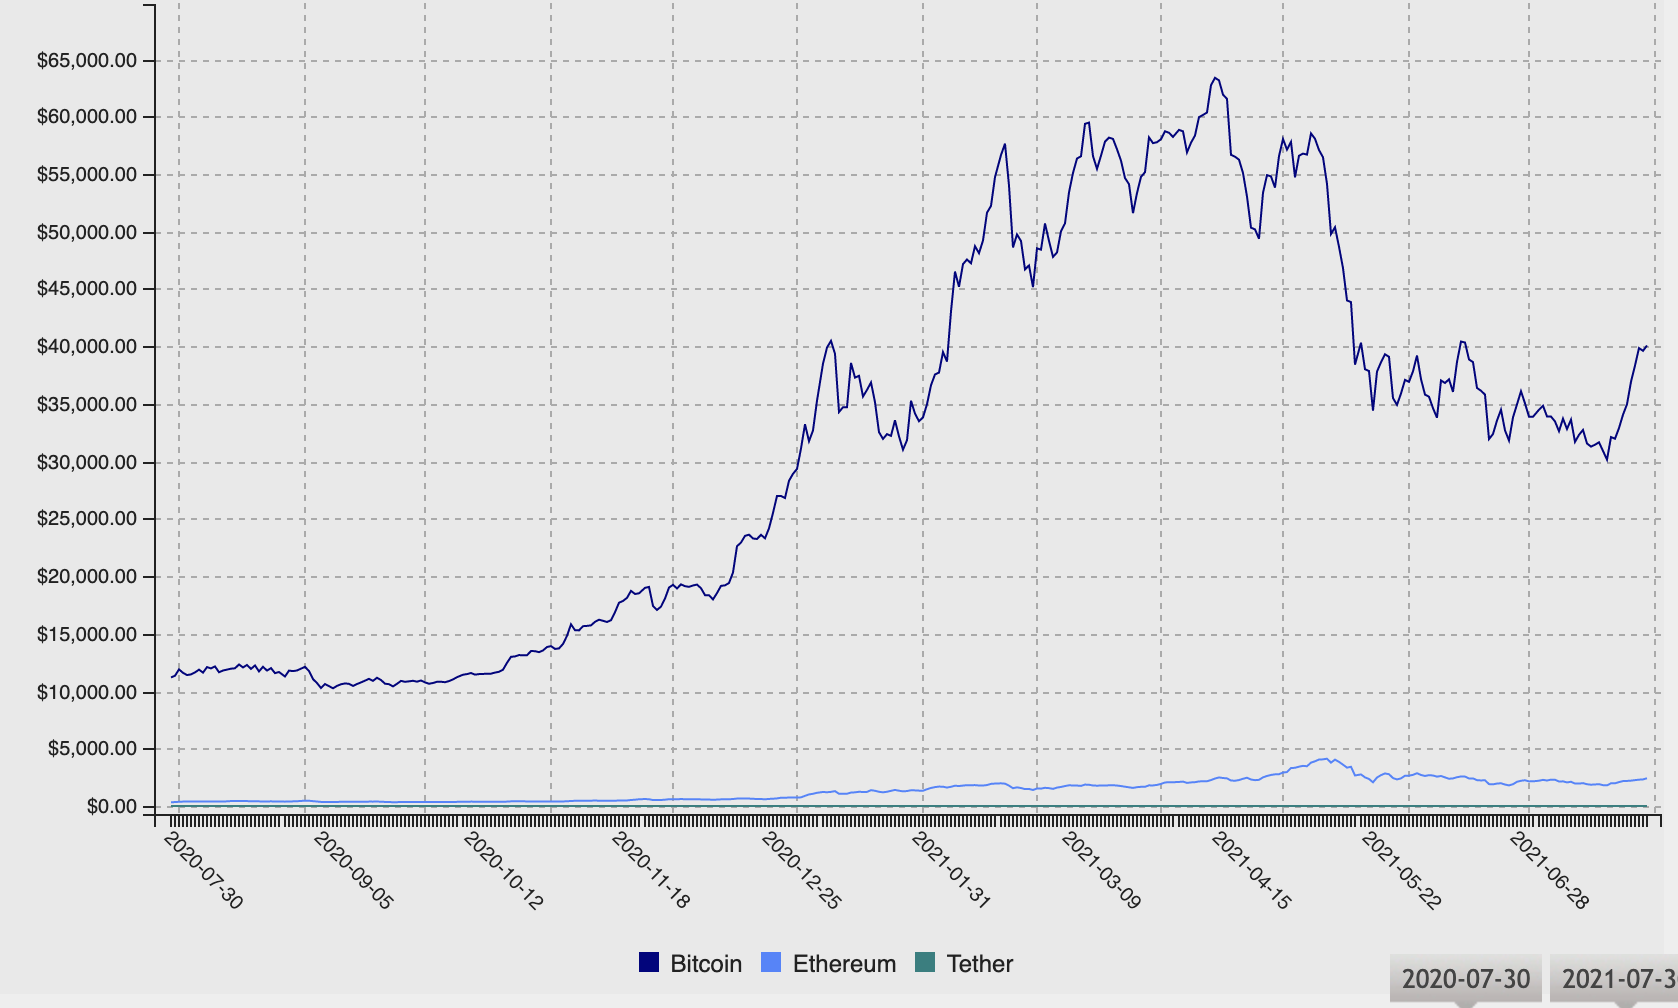 Price comparison chart of Bitcoin, Ethereum, and Tether